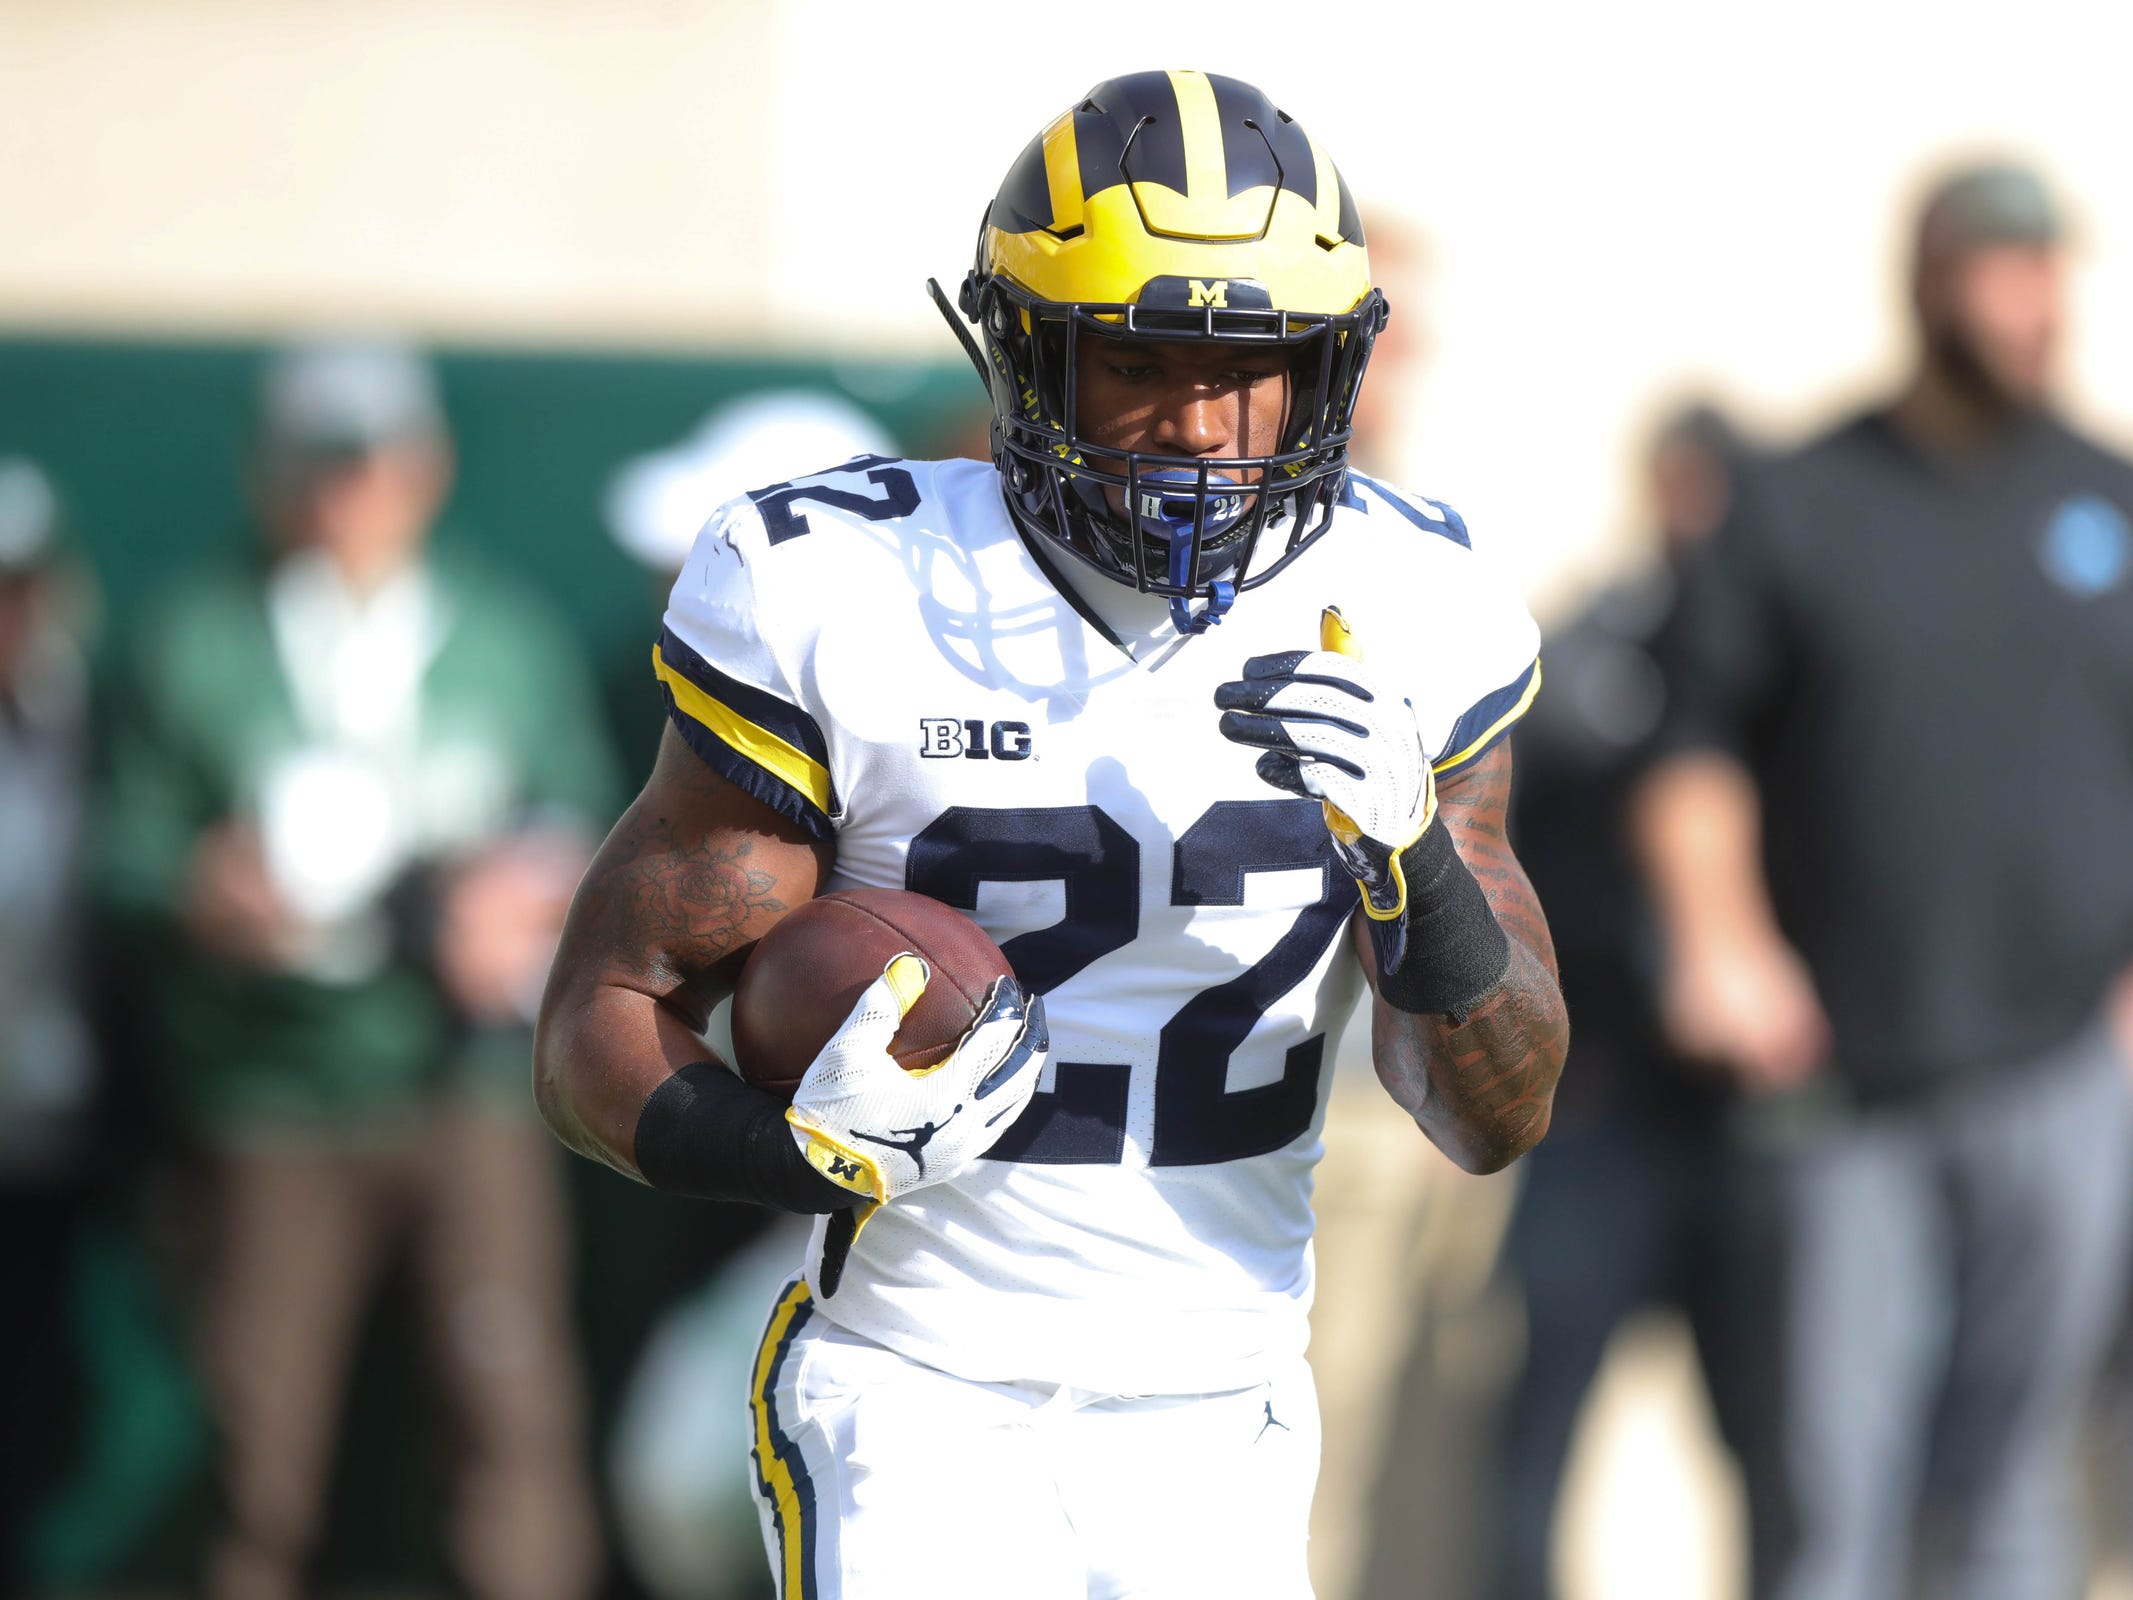 Michigan's Karan Higdon warms up before action against Michigan State on Saturday, Oct. 20, 2018, at Spartan Stadium in East Lansing, Mich.